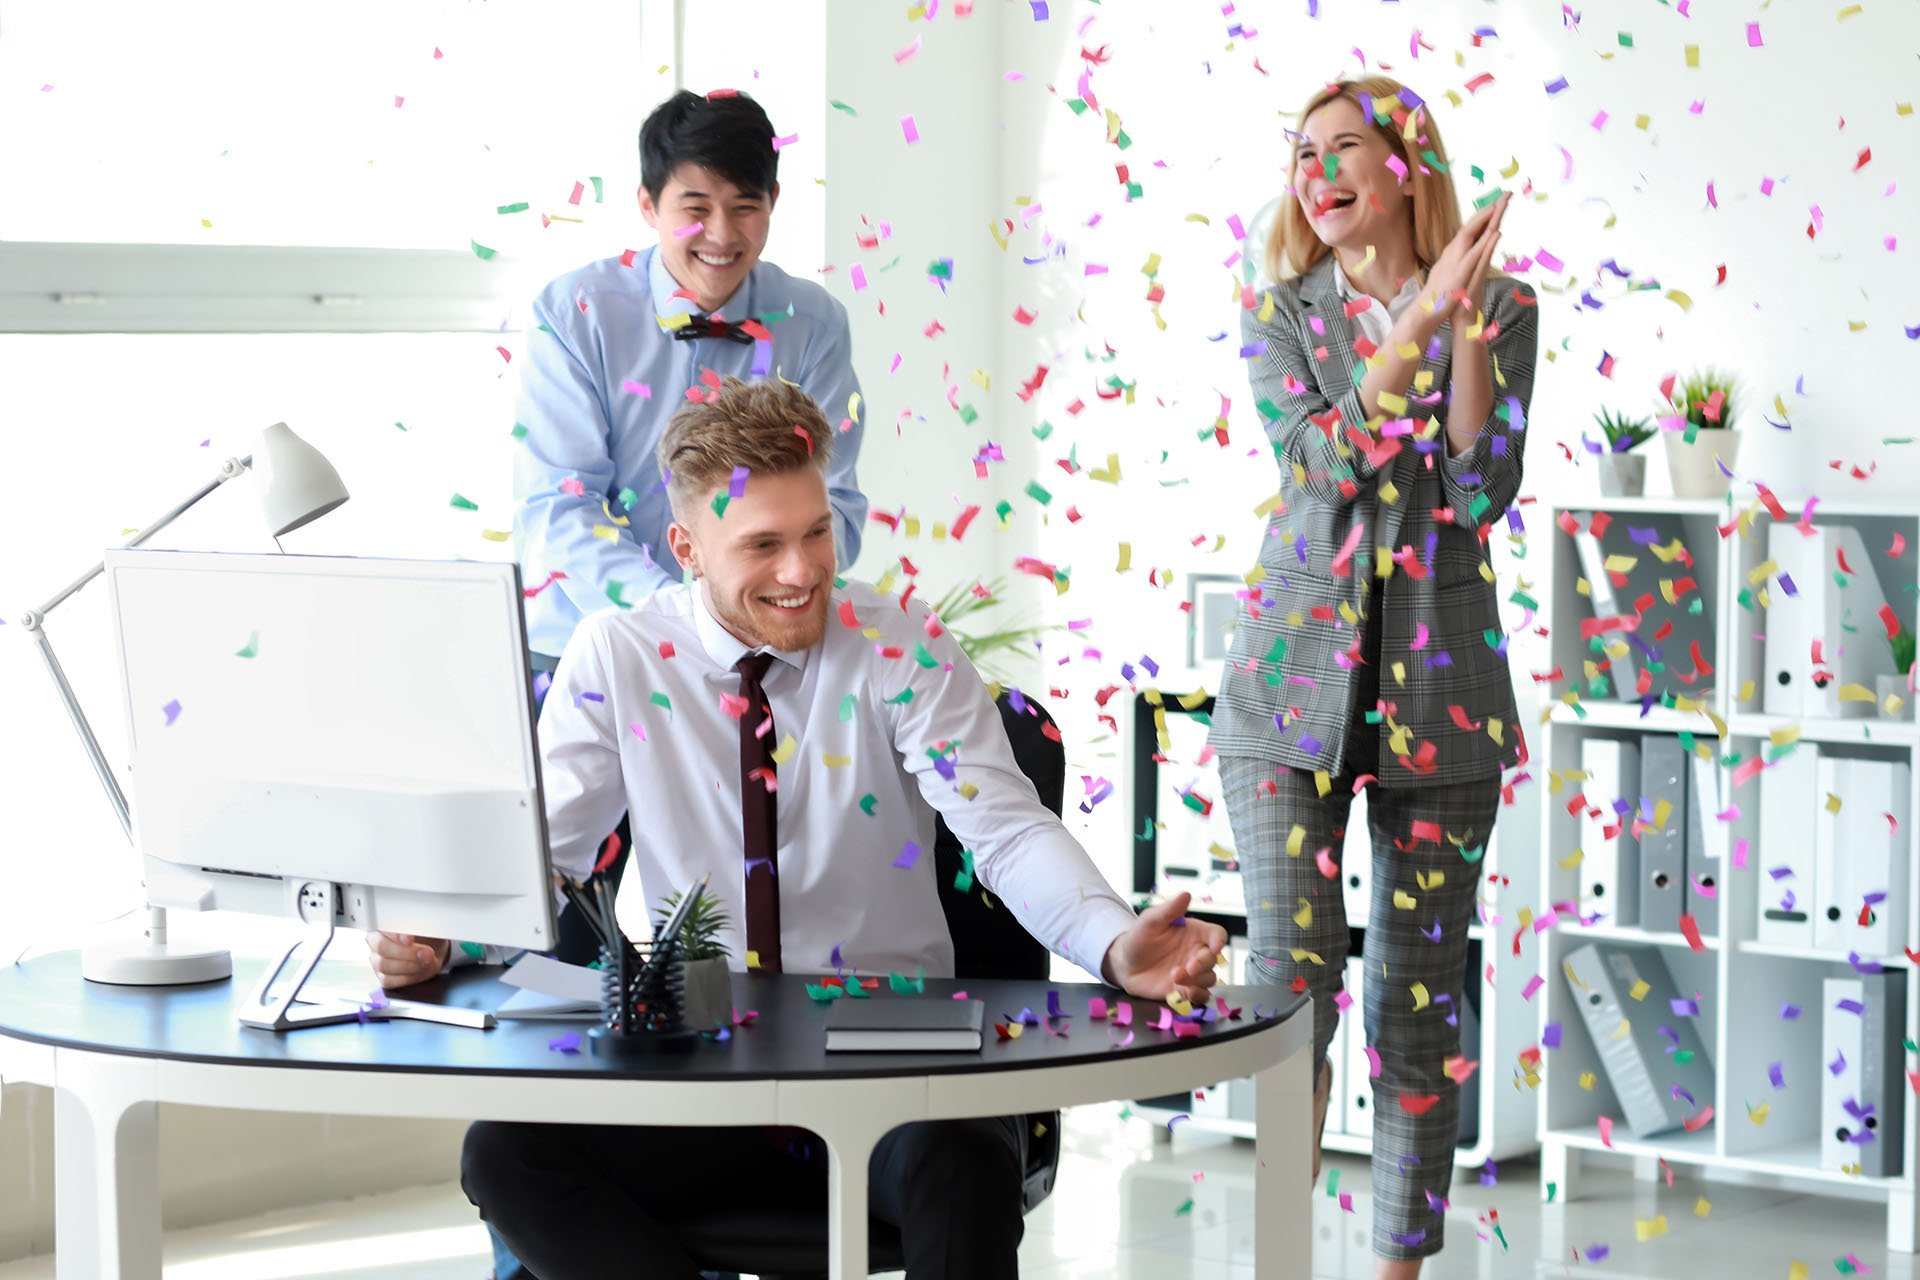 Two men and a woman are showered with confetti at a new employee's desk